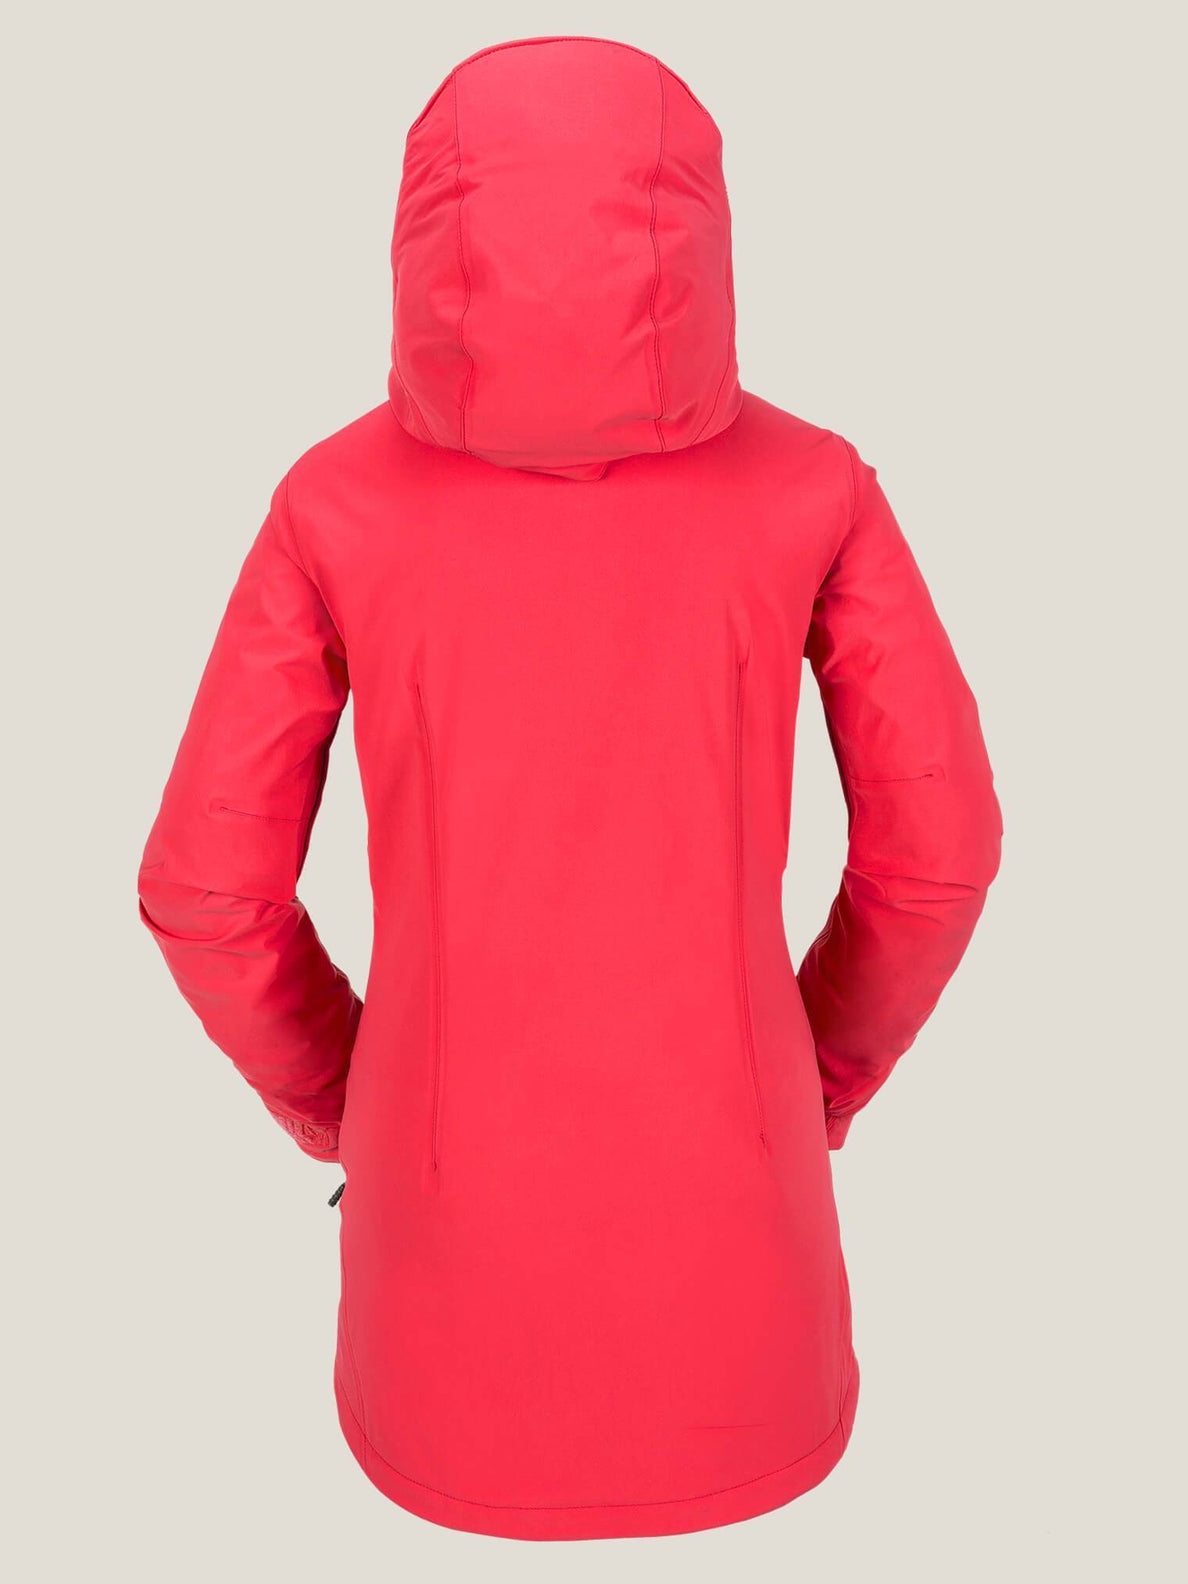 V Insulated GORE-TEX Stretch Jacket - Bright Rose